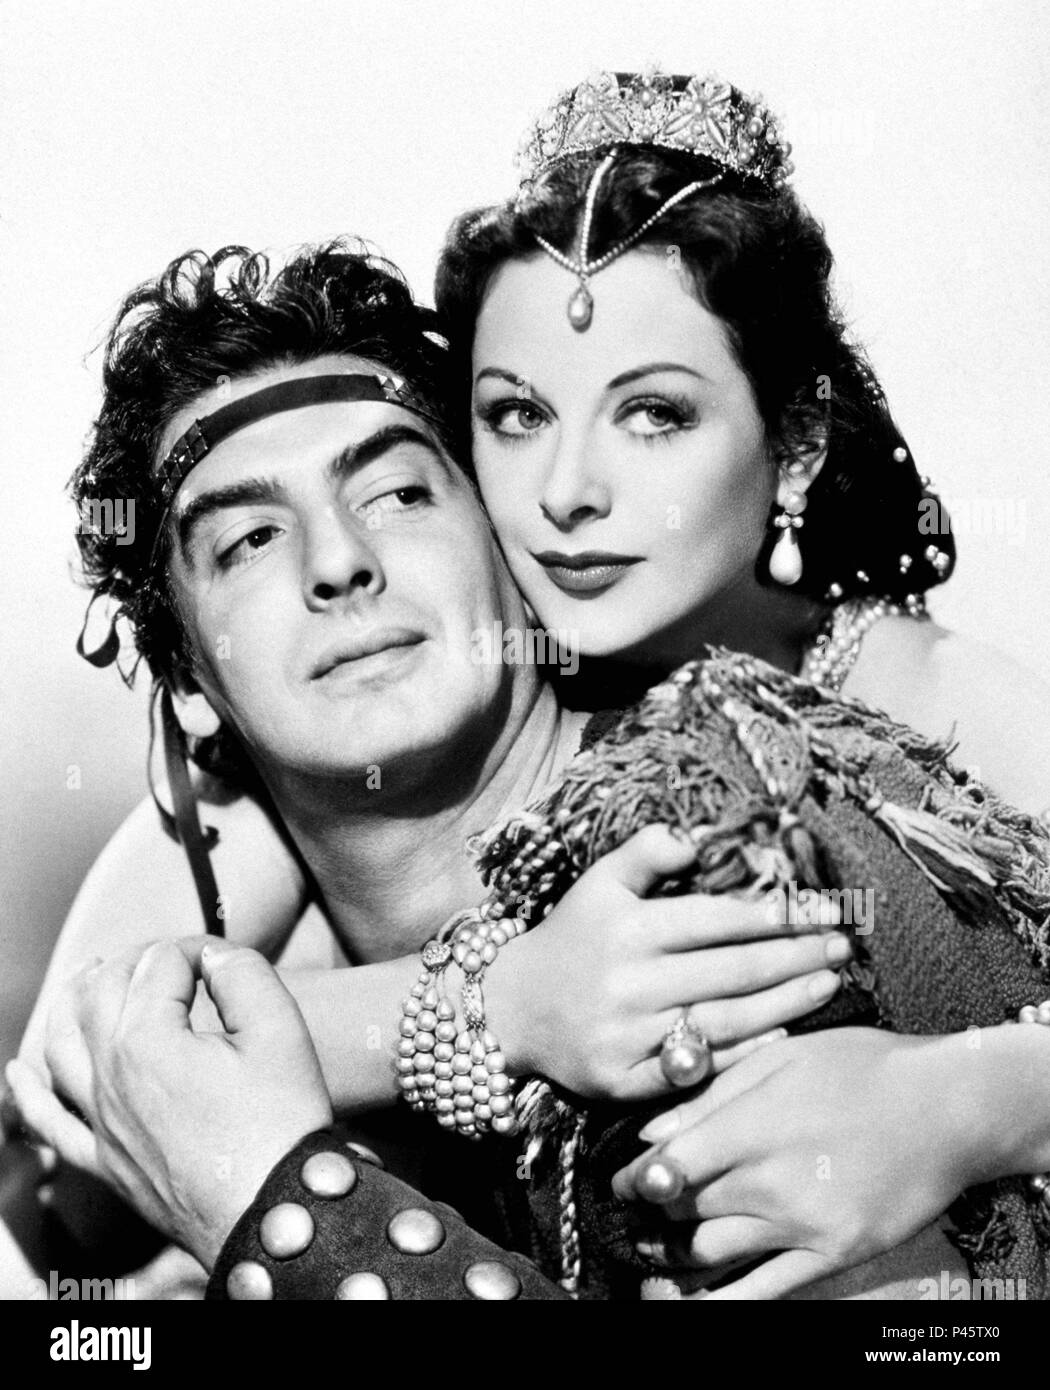 samson and delilah film Such a drag that viewers of all faiths will find themselves wishing that delilah and  her scissors could have somehow found her way into the.